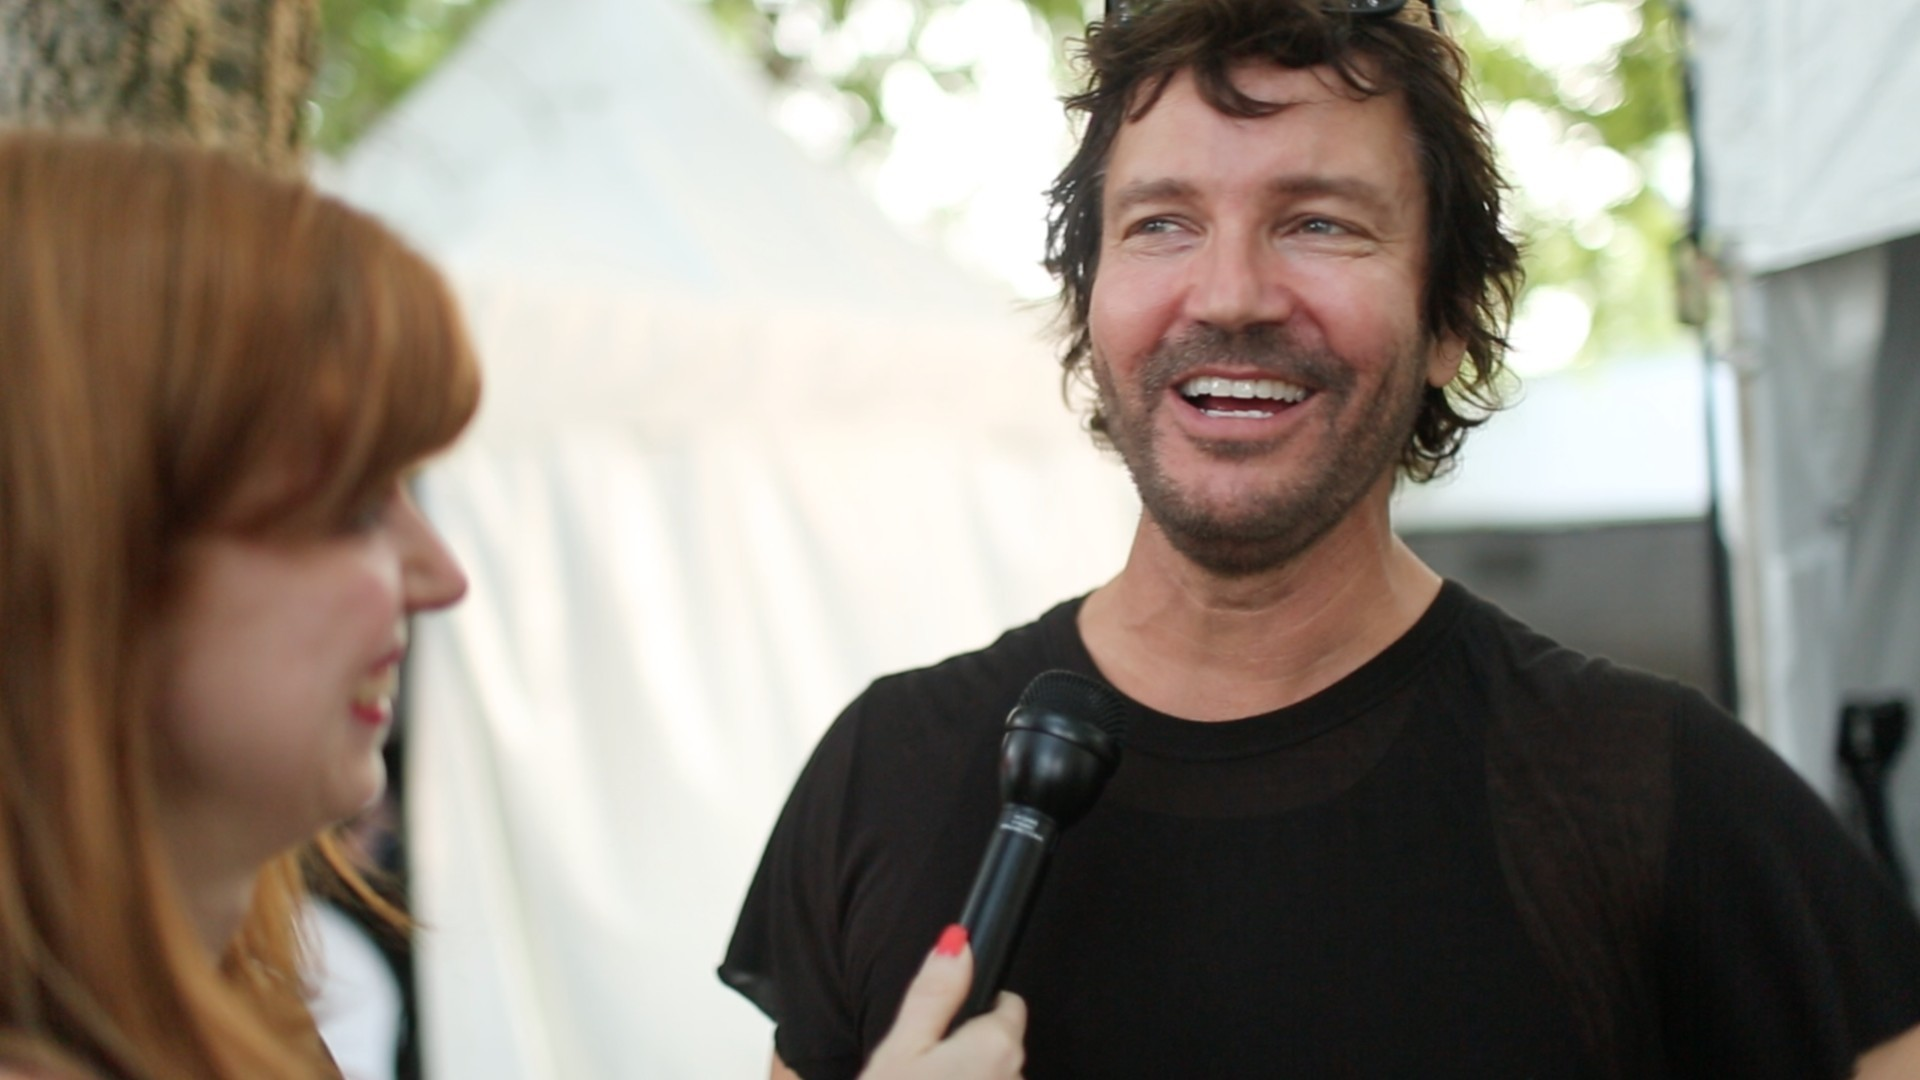 interview stephan jenkins of third eye blind at lollapalooza interview stephan jenkins of third eye blind at lollapalooza chicago tribune